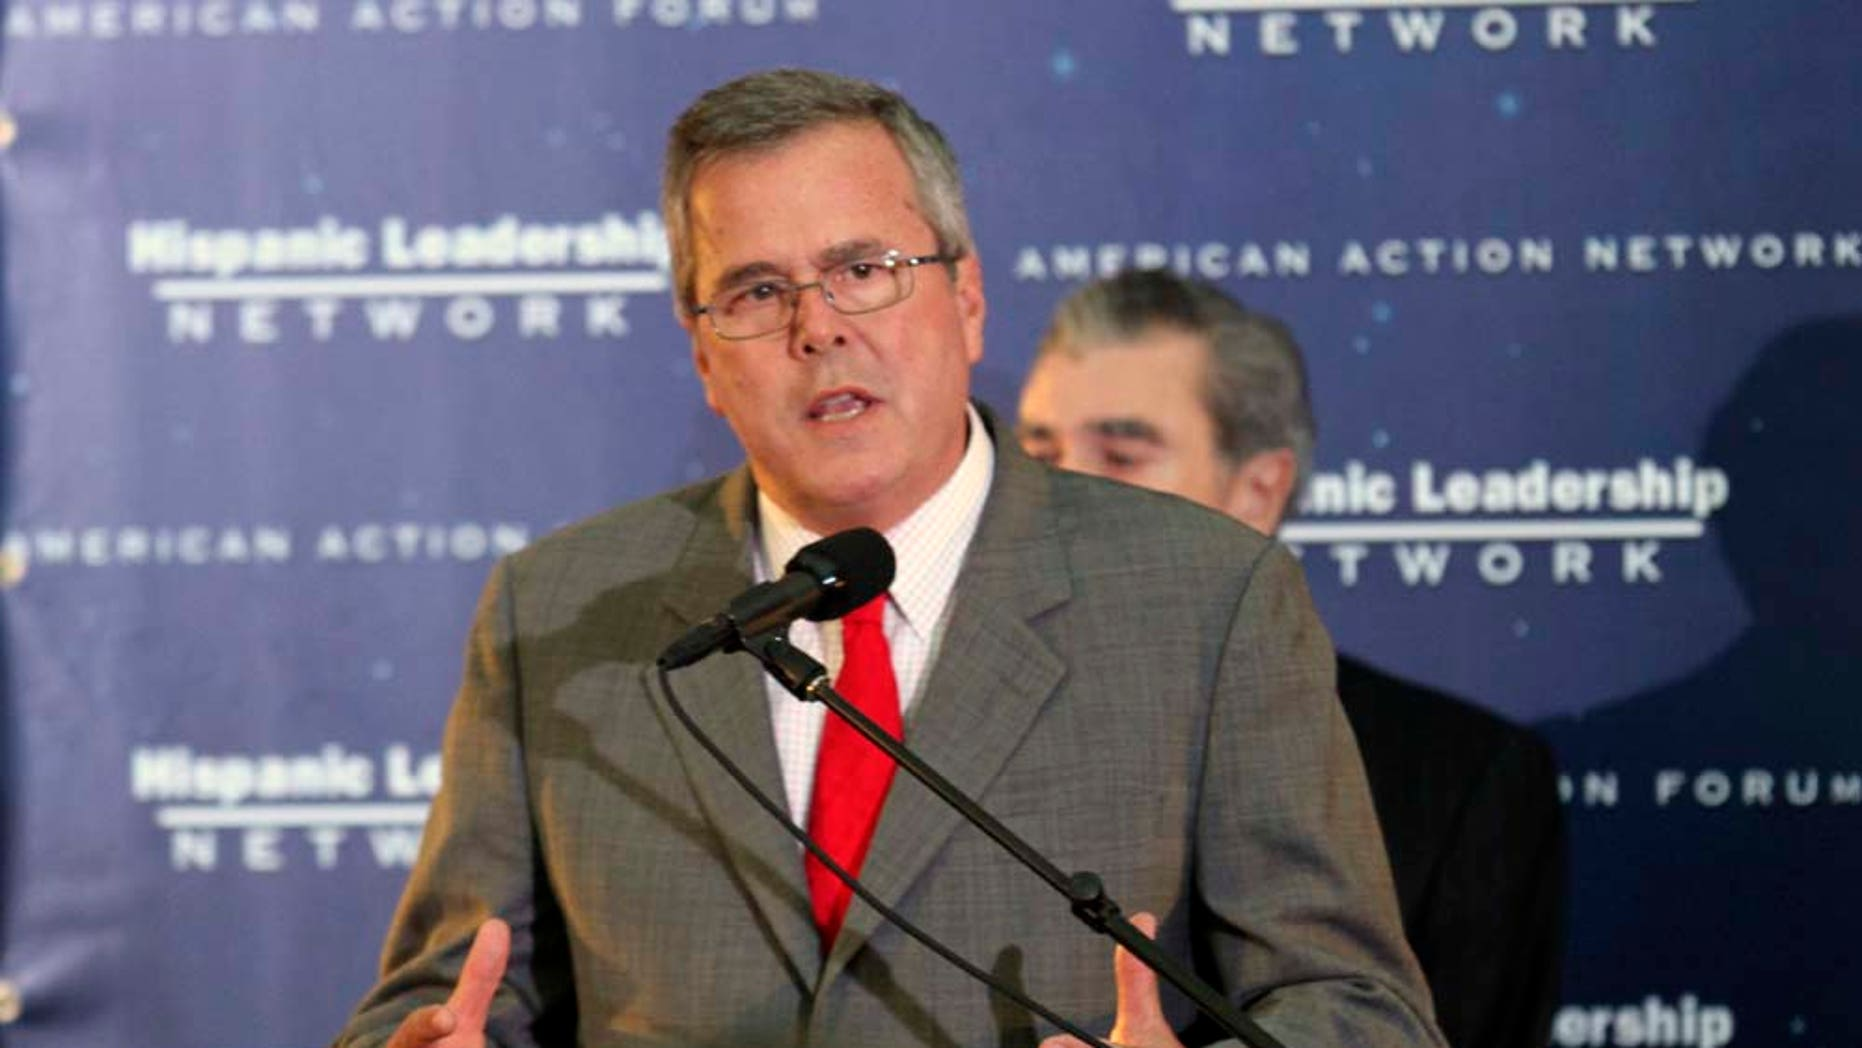 Former Florida Gov. Jeb. Bush will co-chair the Hispanic Leadership Network conference in Florida on Jan. 26.